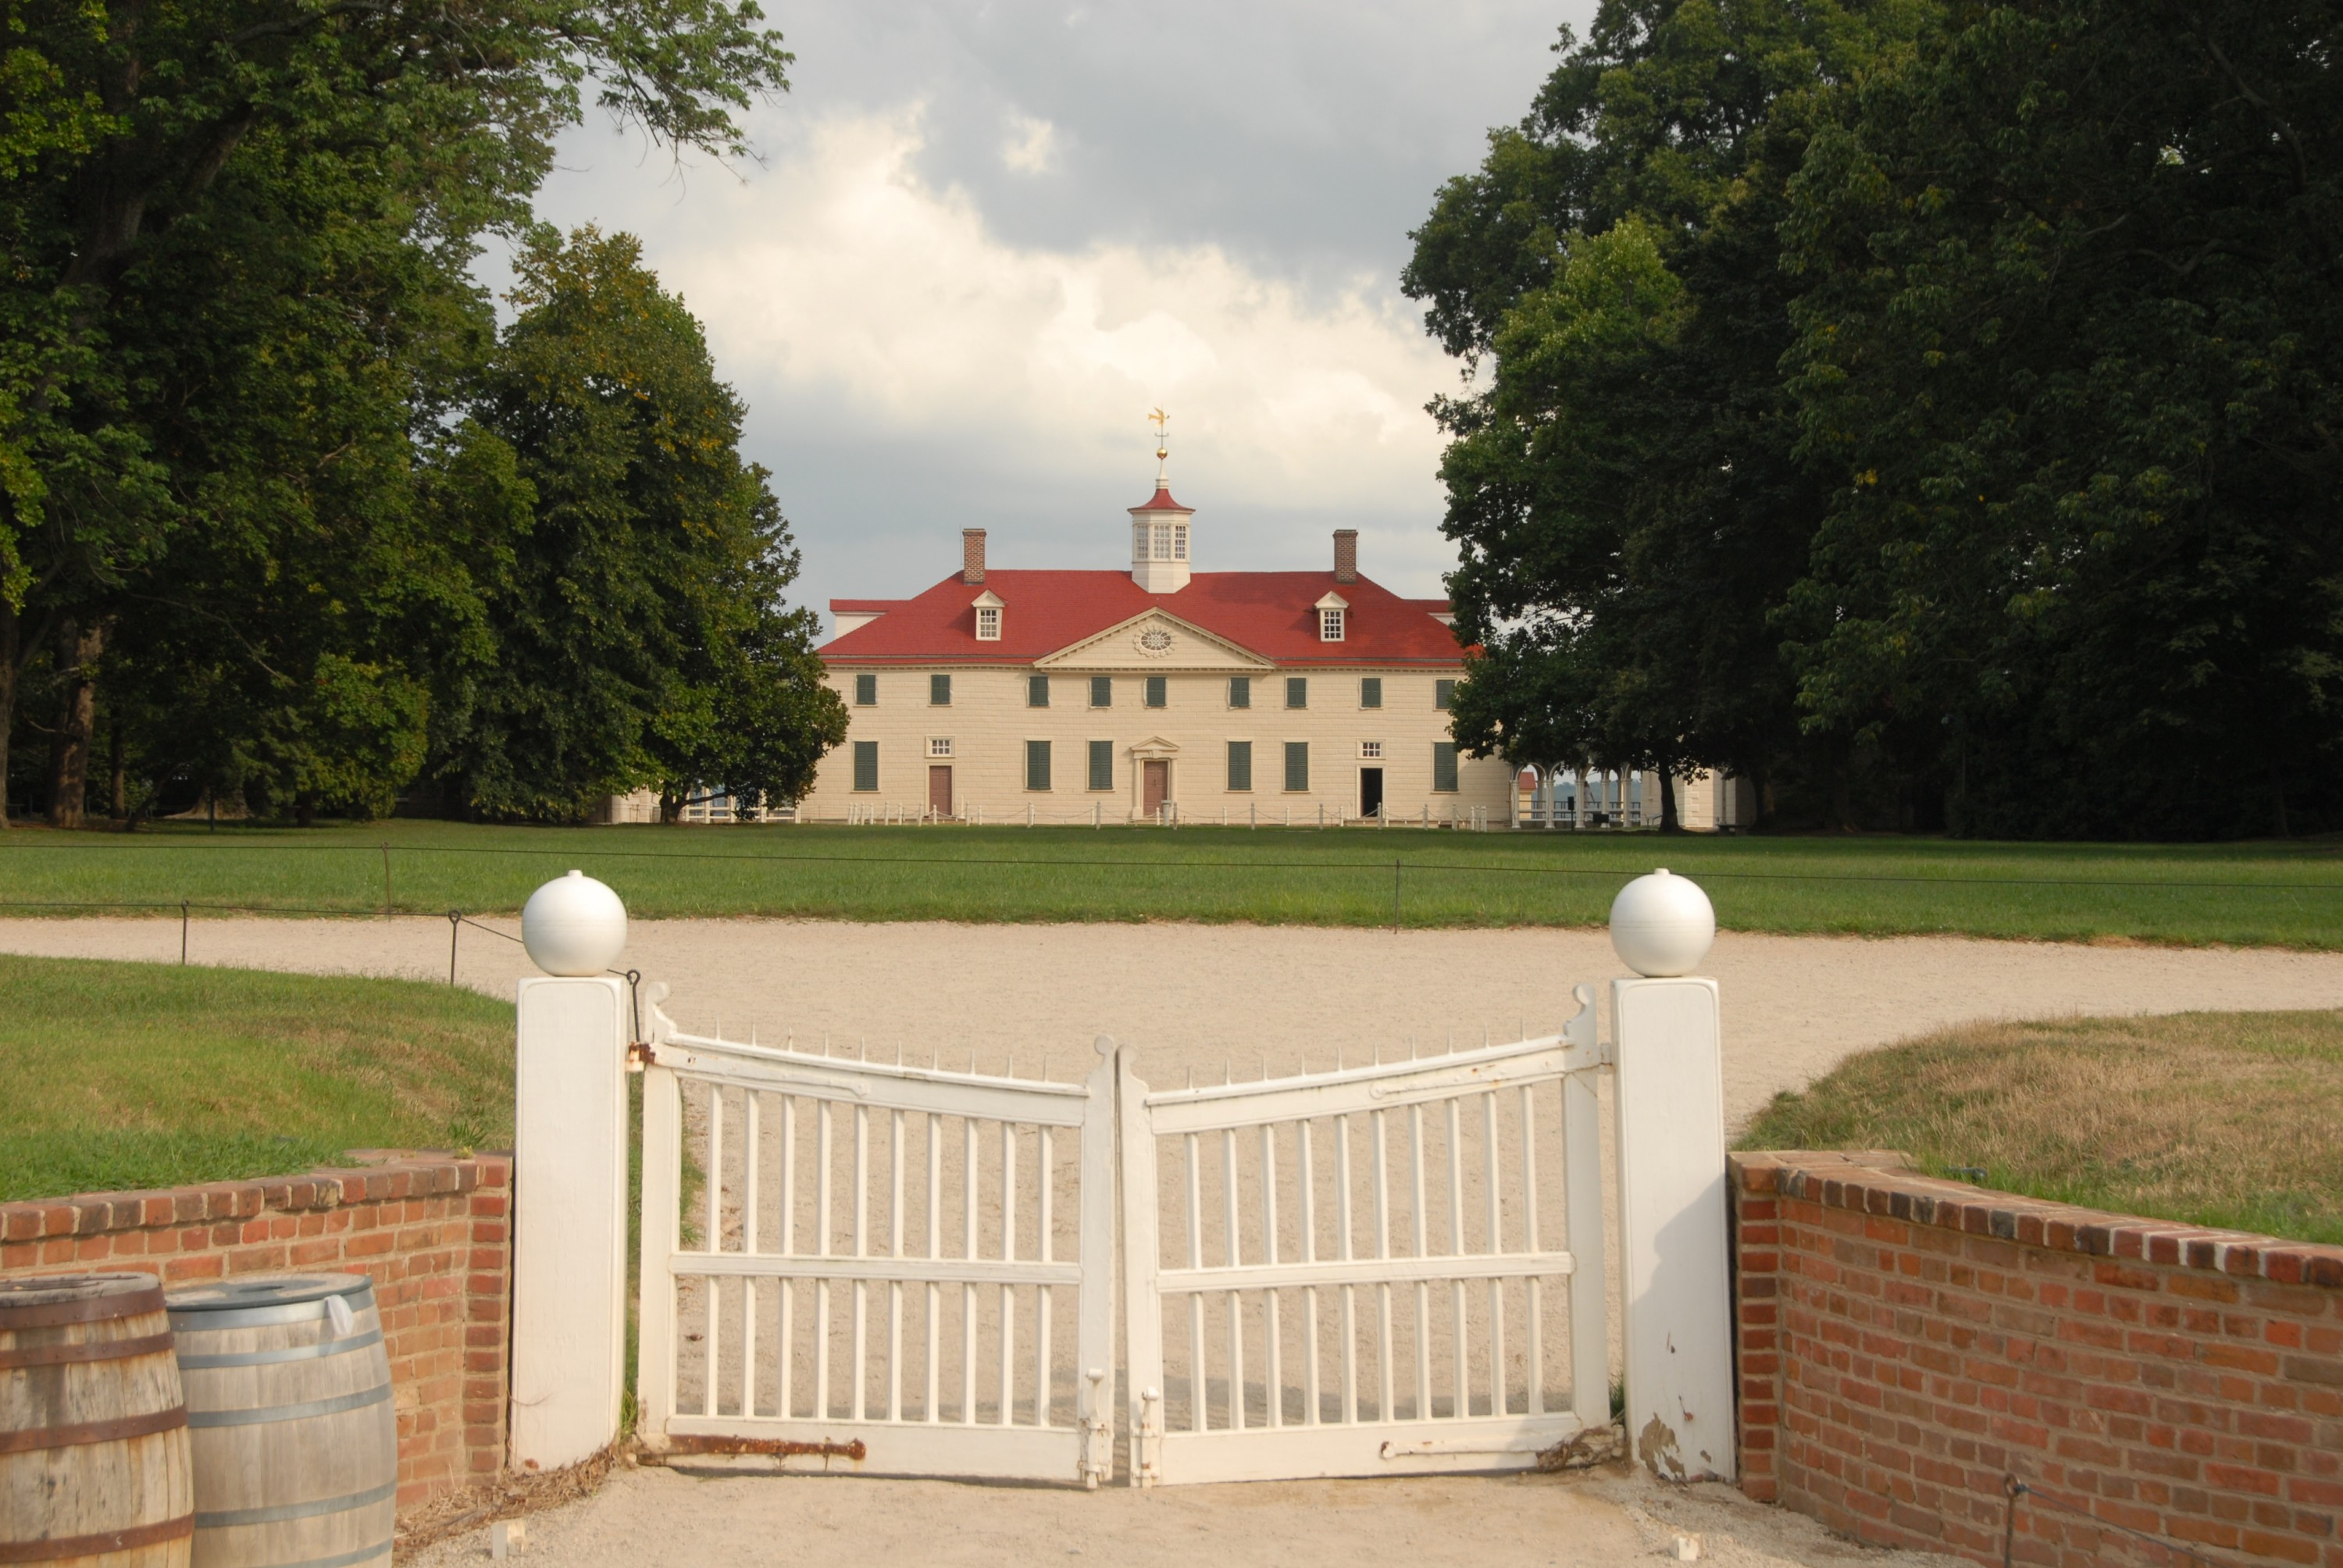 Donations made by the public have helped keep Mount Vernon in pristine condition for more than 150 years